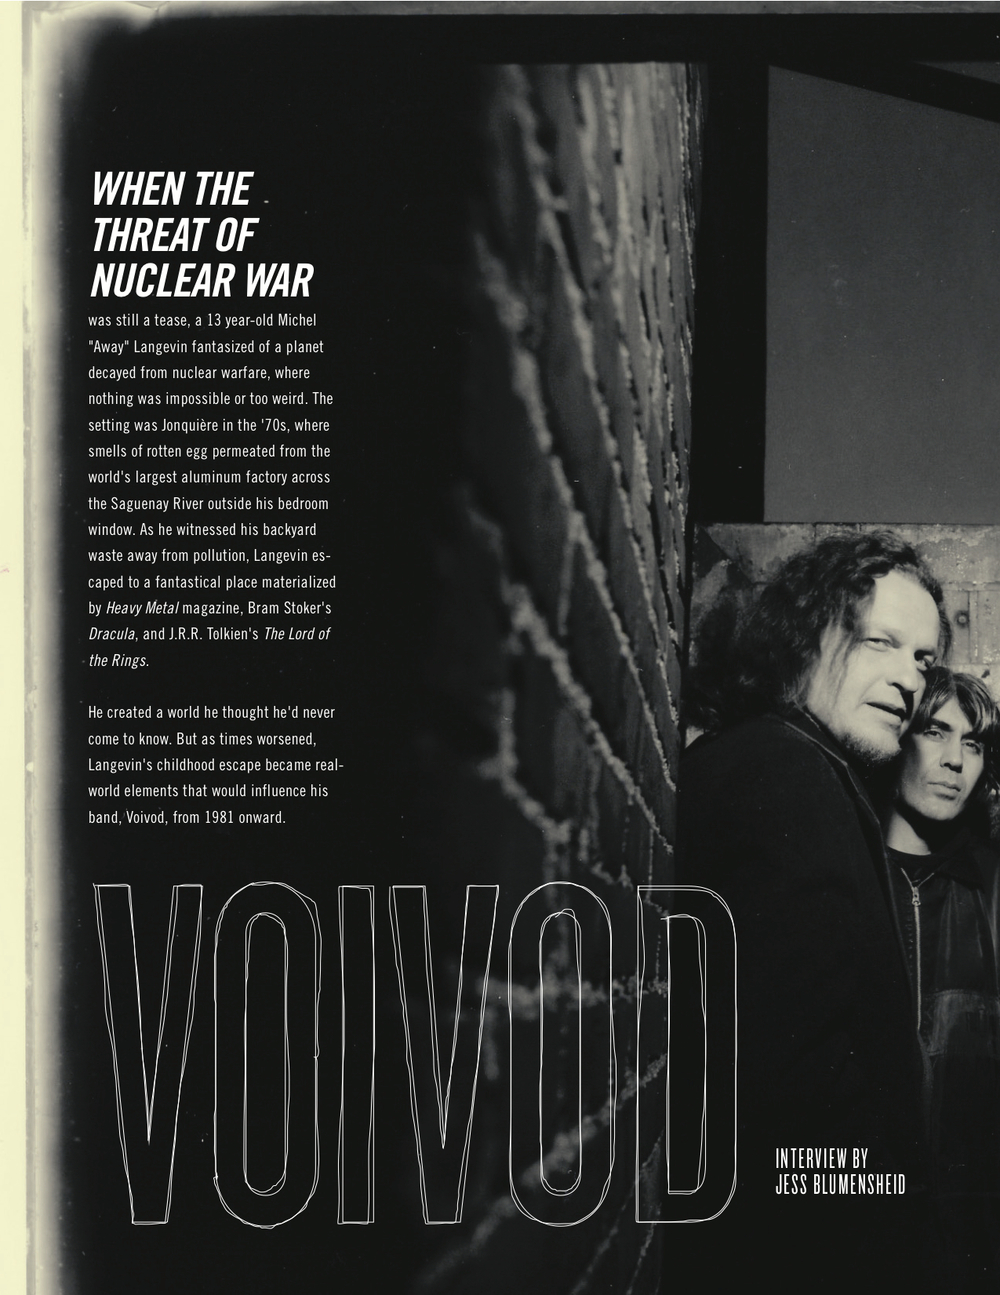 Voivod interview - MDF 2011 program guide